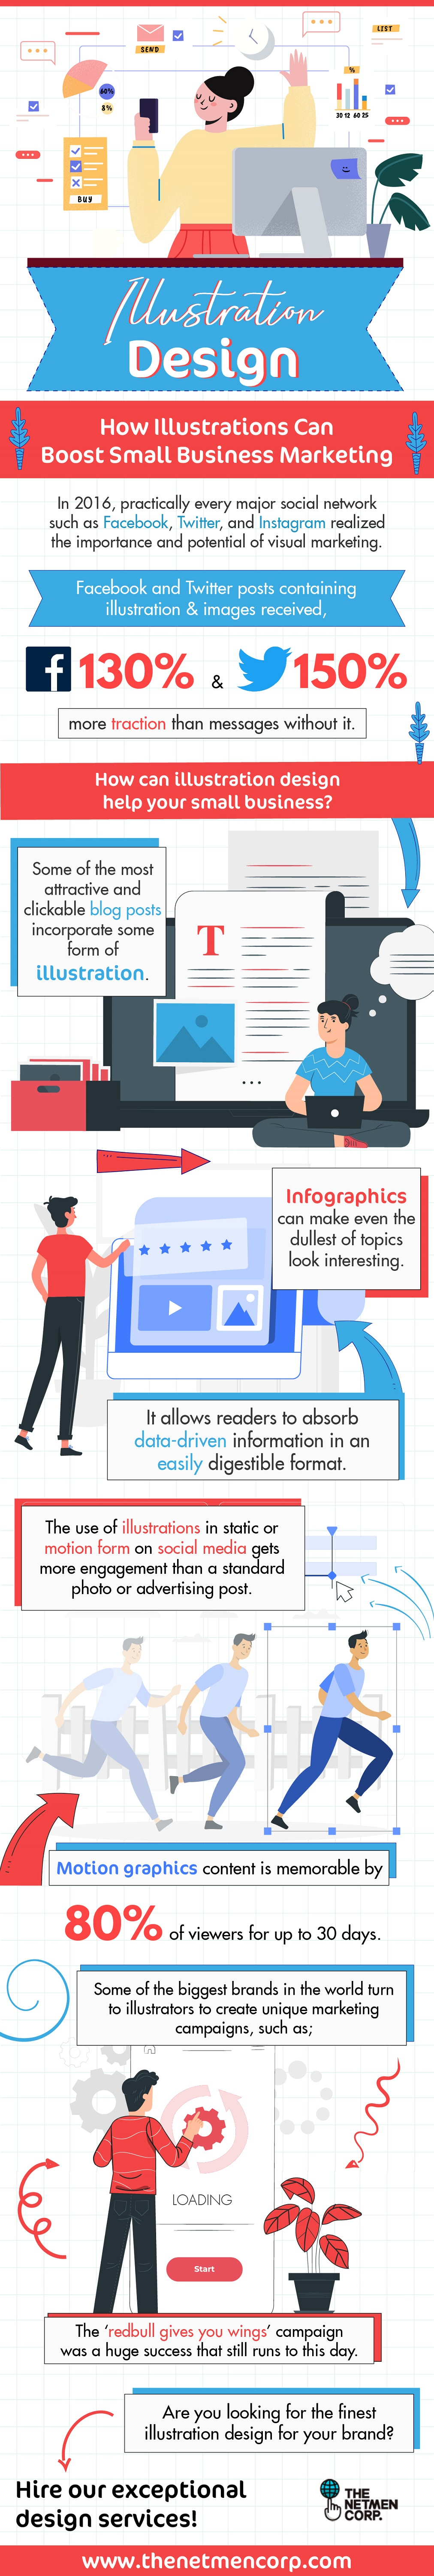 How Illustration can boost small business marketing